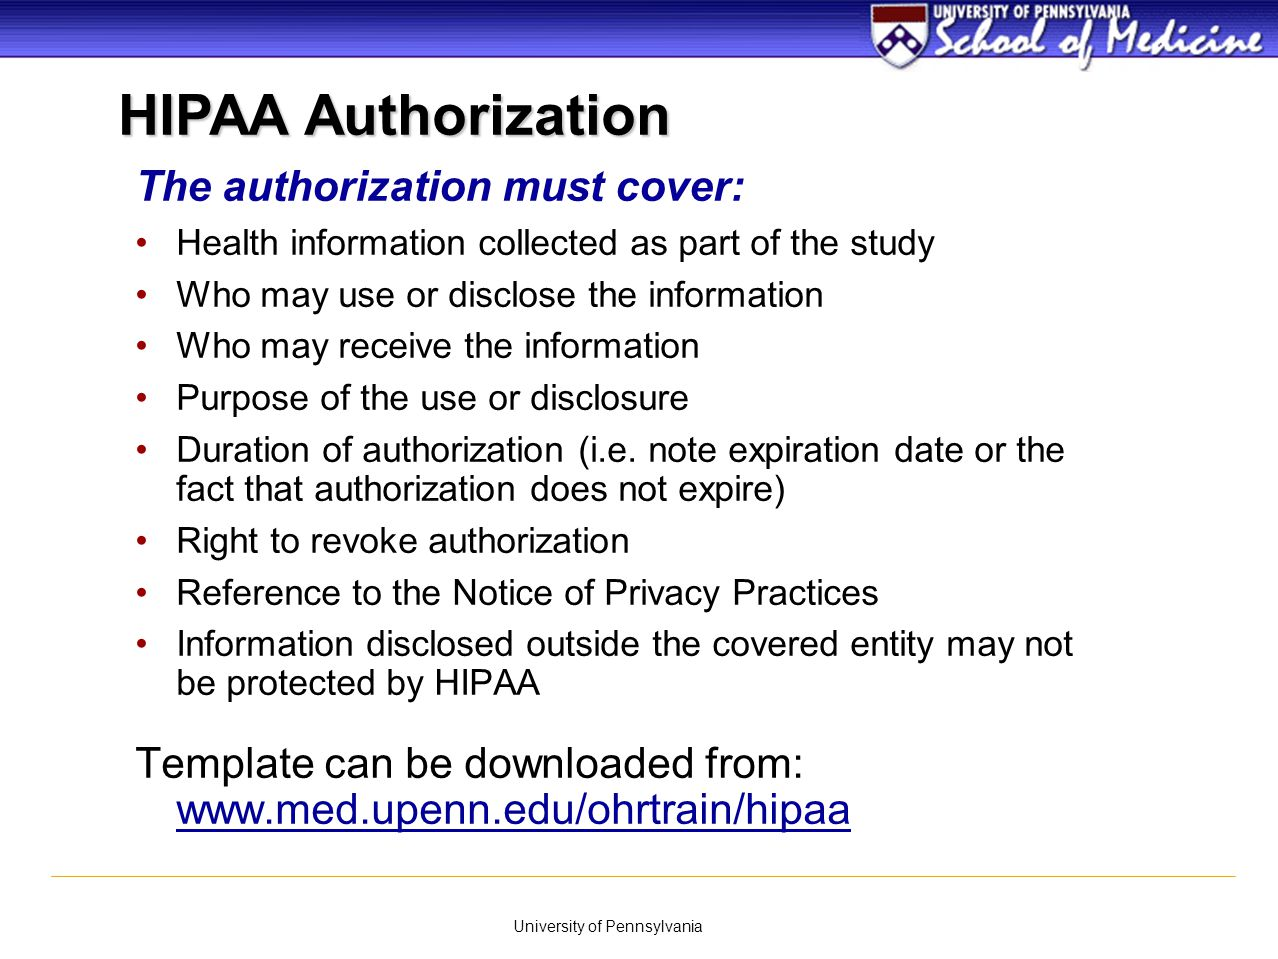 University of Pennsylvania The authorization must cover: Health information collected as part of the study Who may use or disclose the information Who